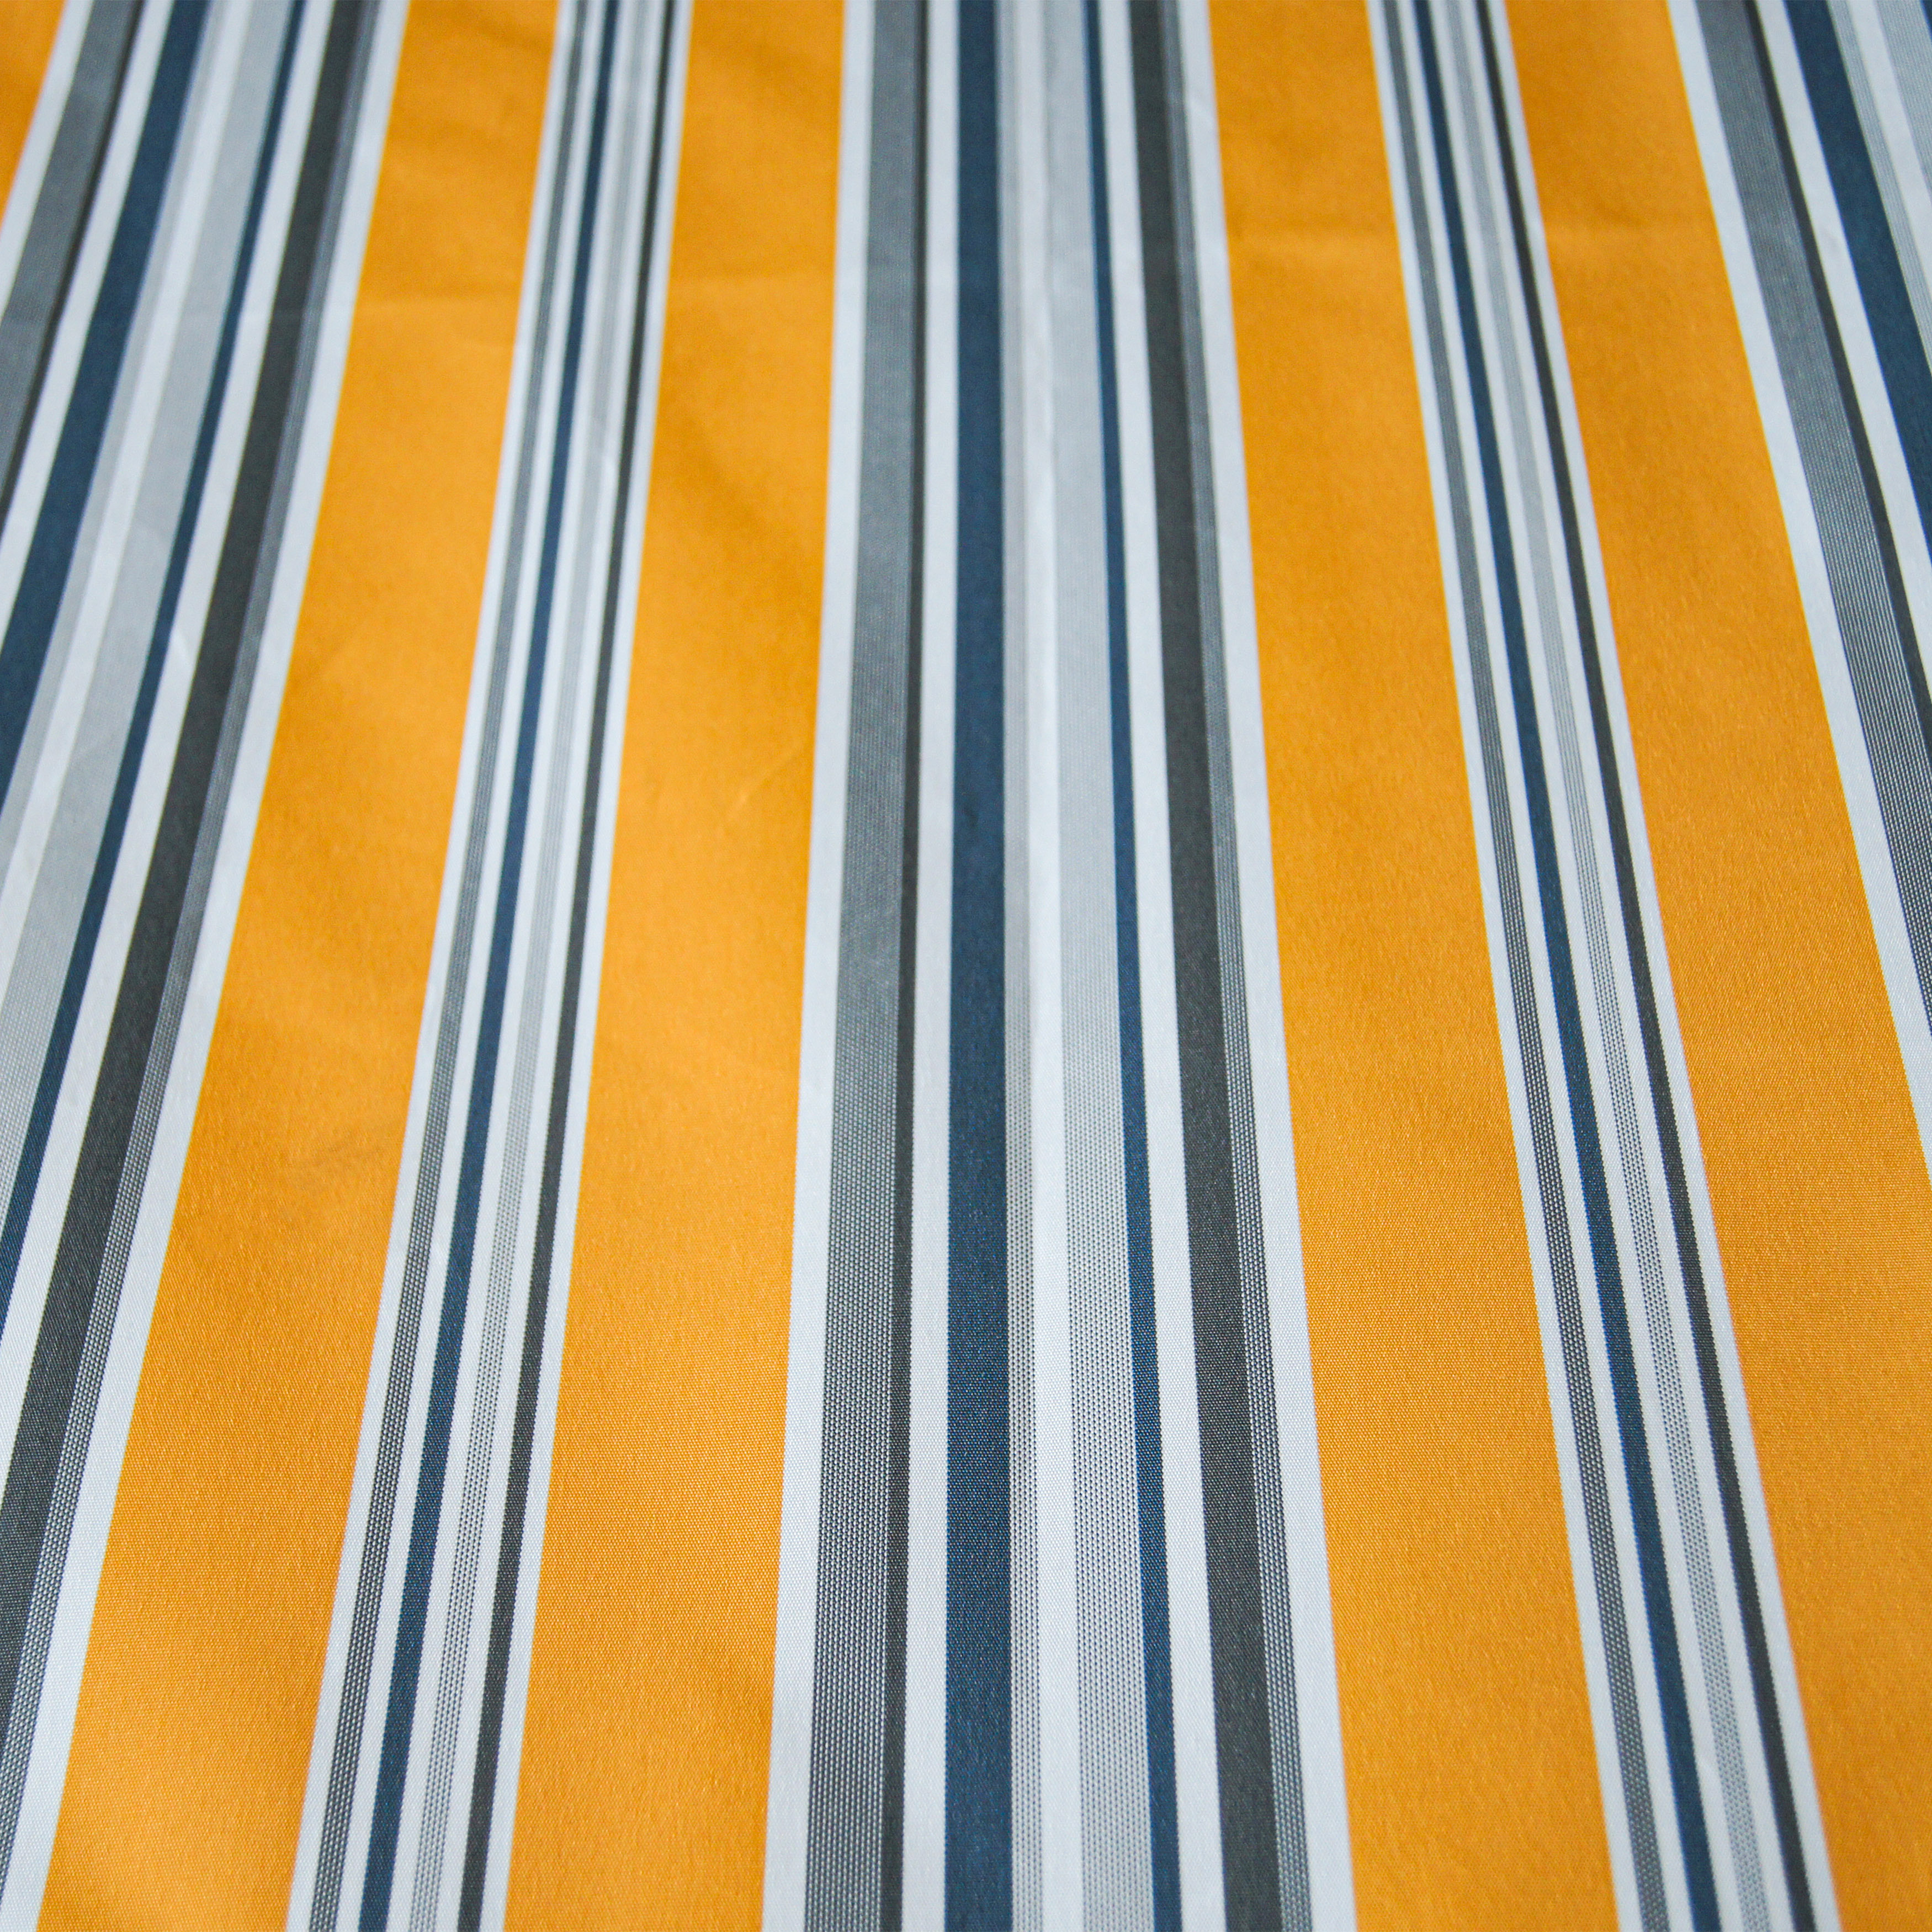 ALEKO Fabric Replacement 10 X 8 ft for Retractable Awning ...